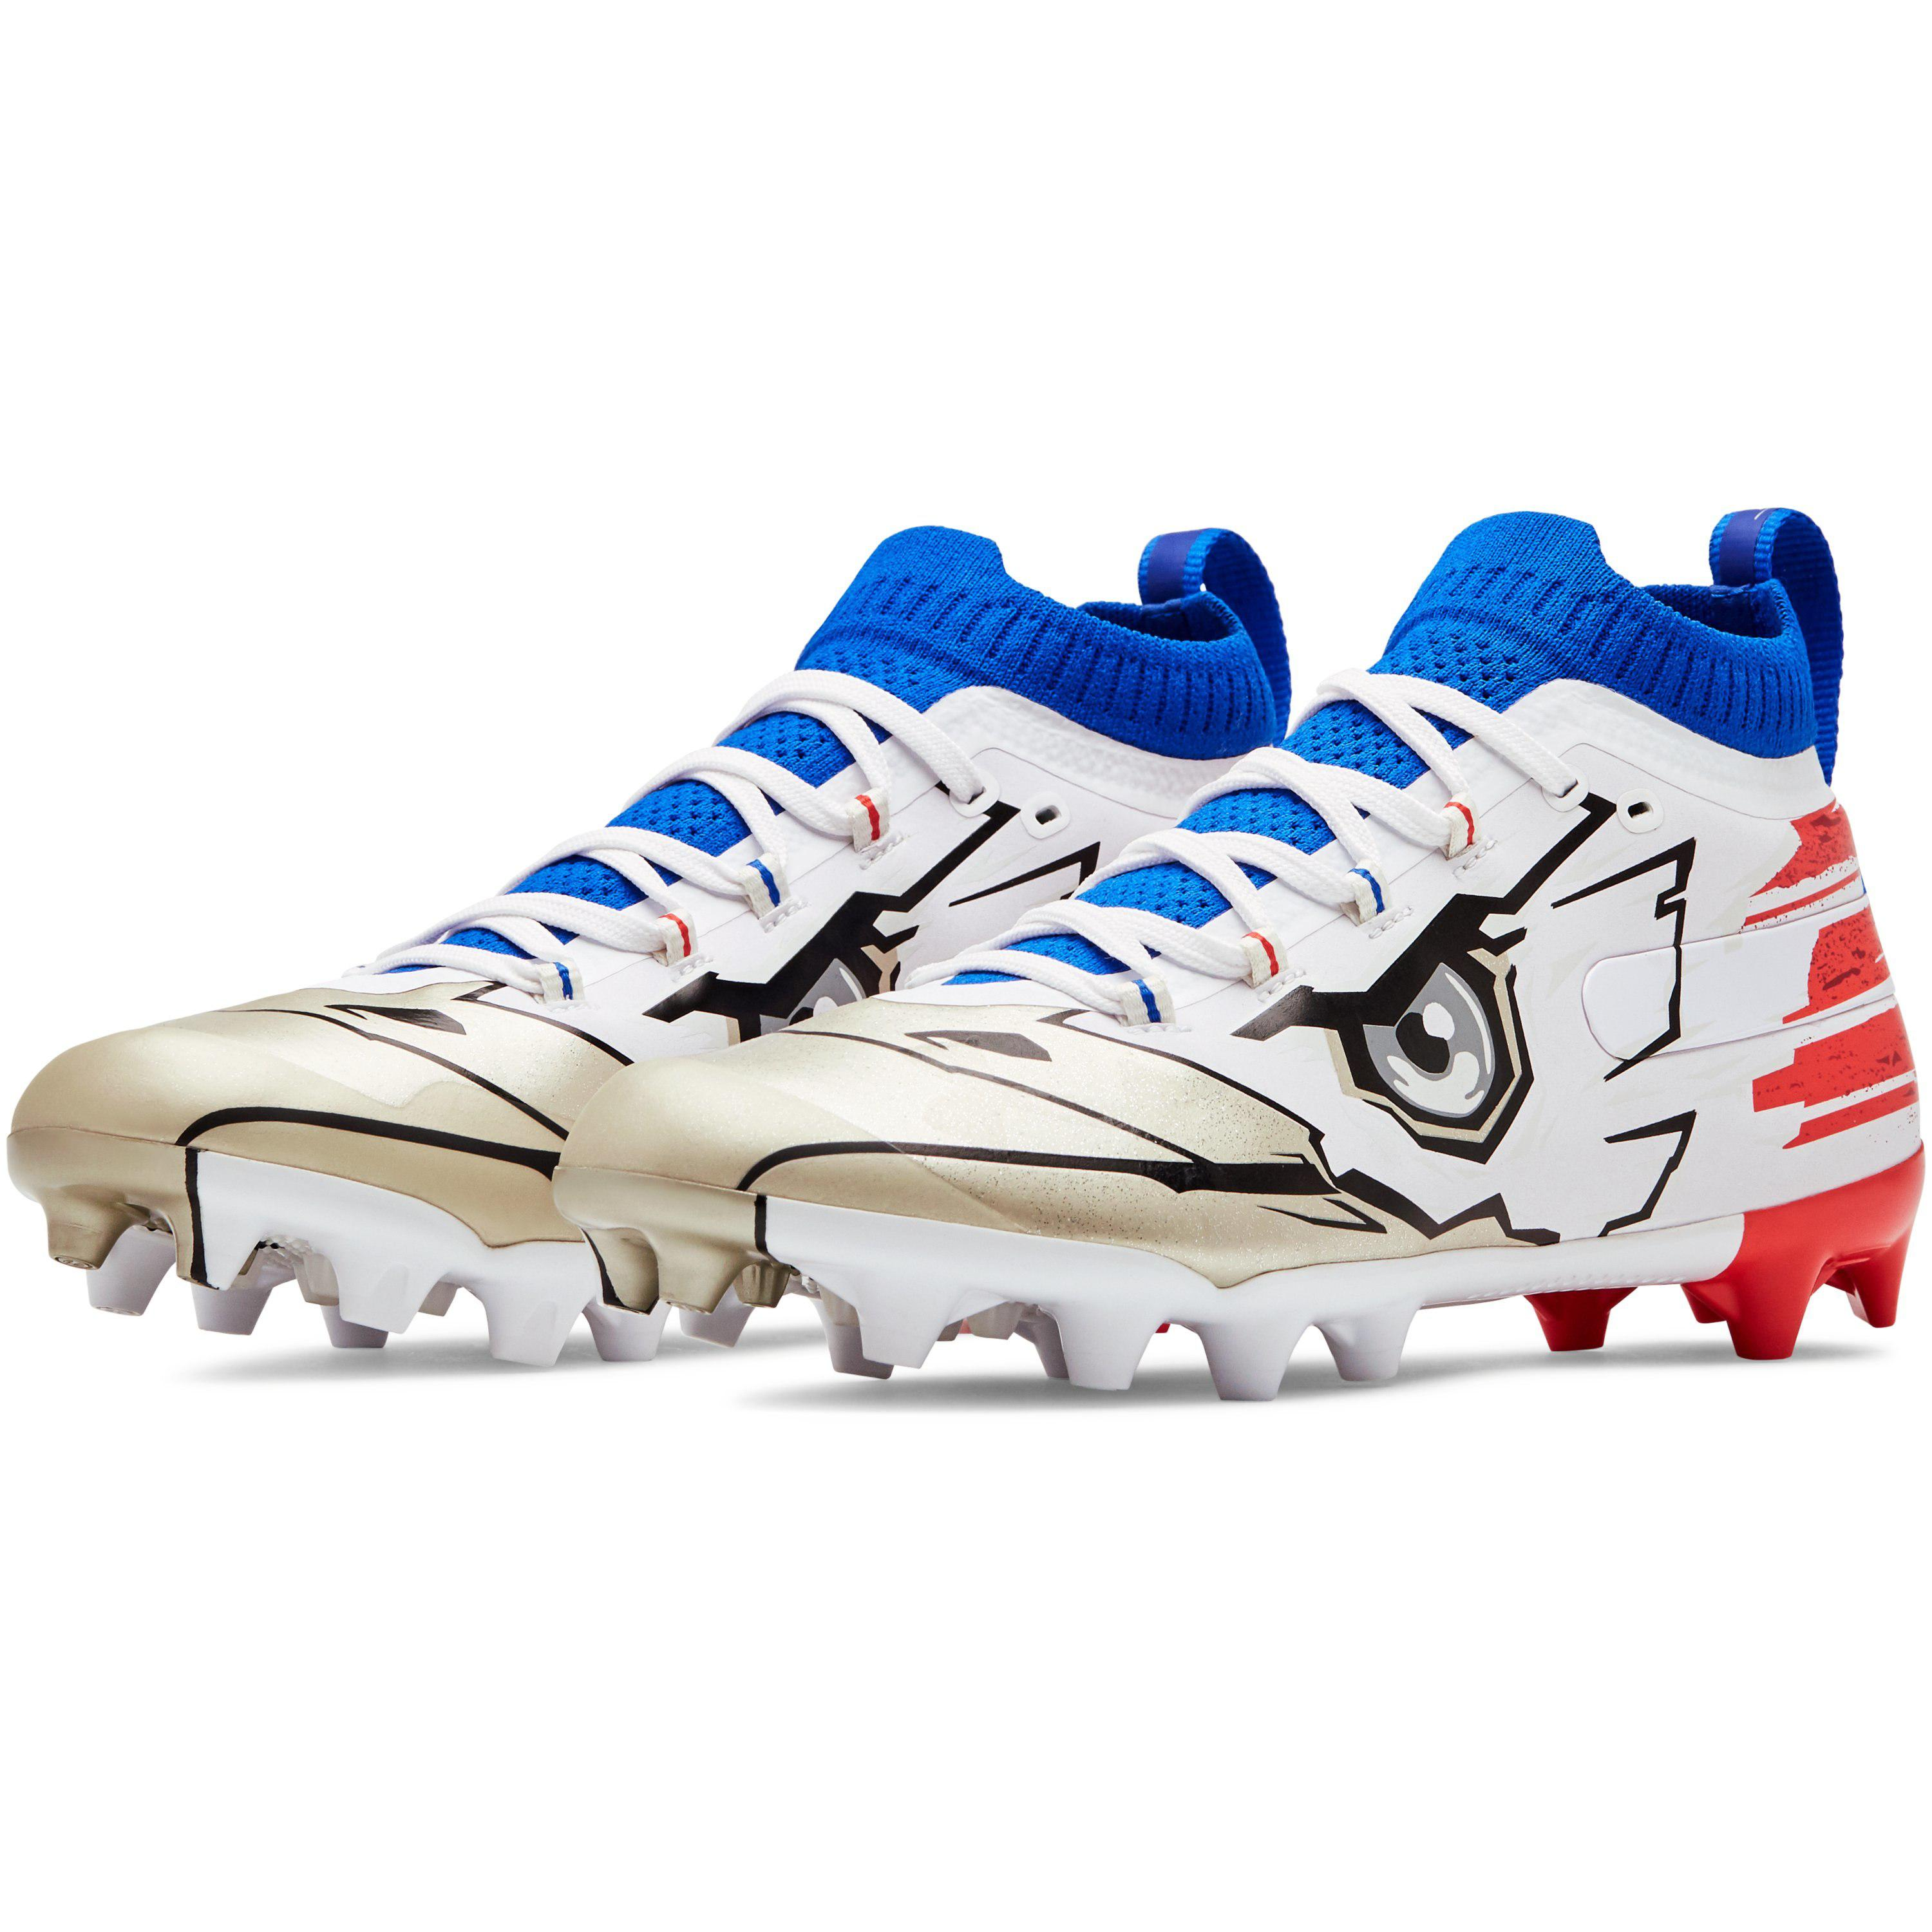 7a6bf8d359e Under Armour Spotlight-limited Edition Football Shoe in Blue for Men ...